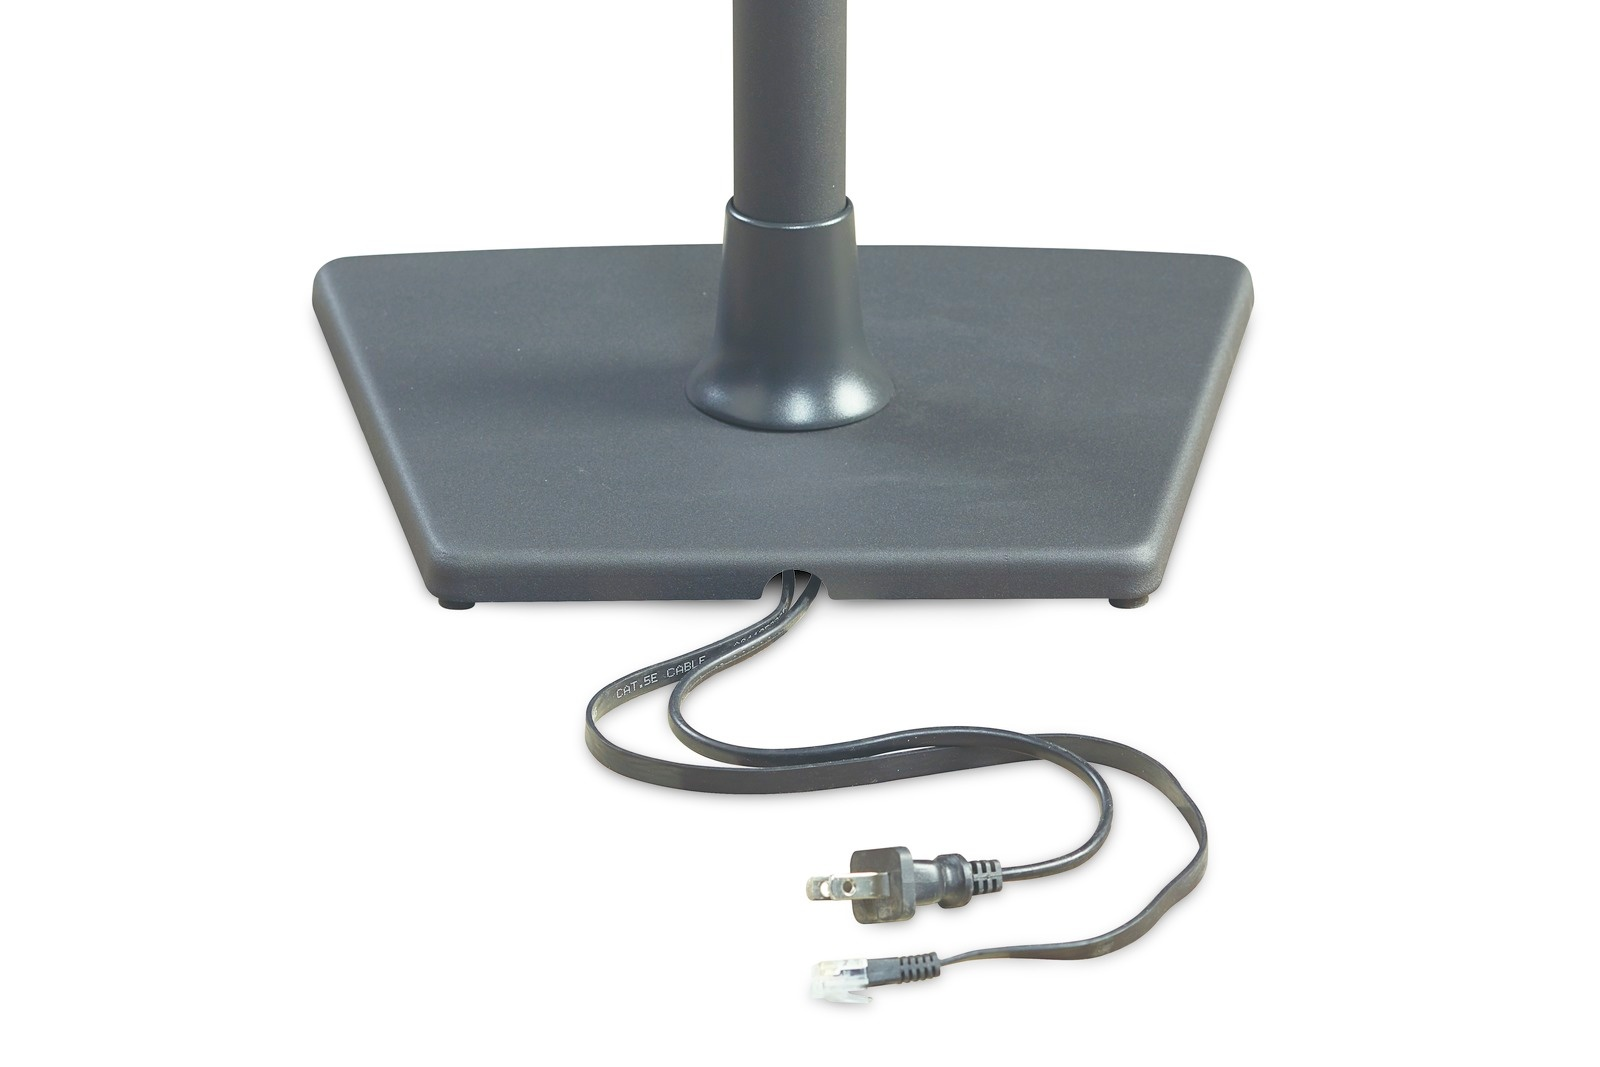 SANUS WSS1 Speaker Stand with Cable Management